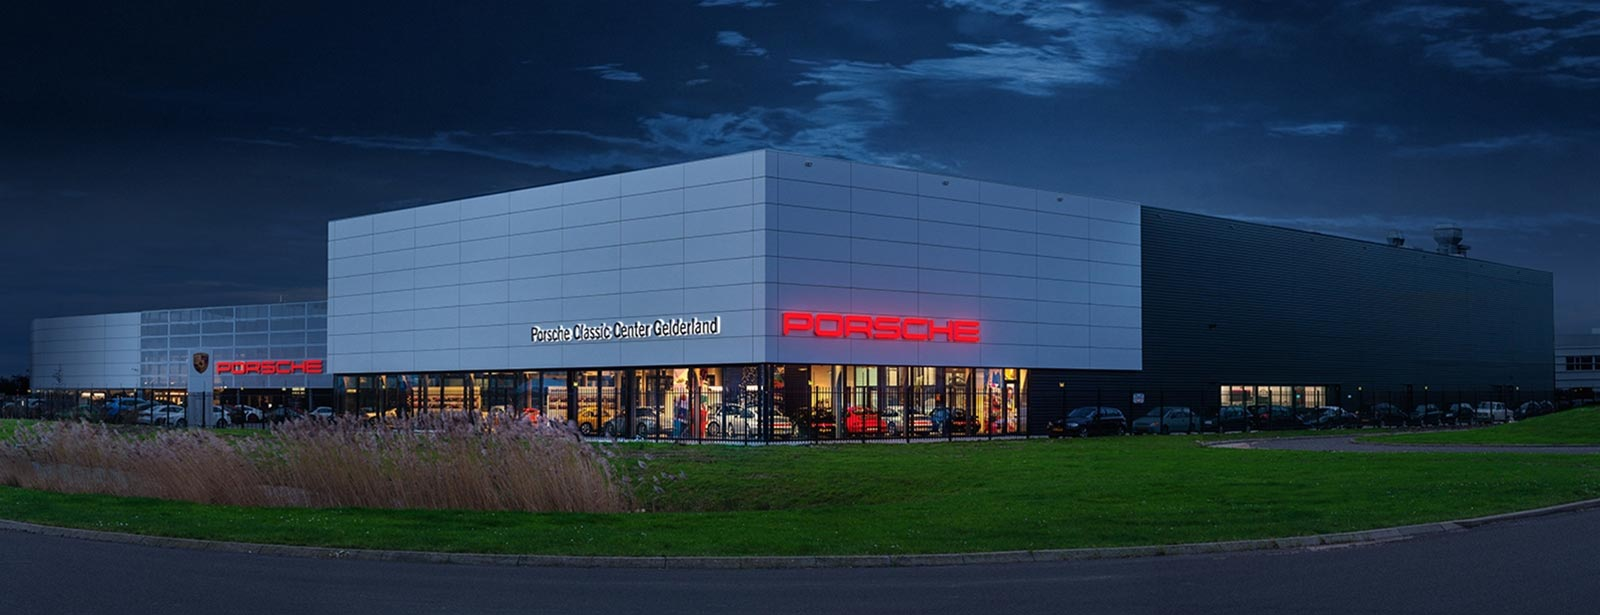 We build your classic dream.  - Porsche Classic Center Gelderland.